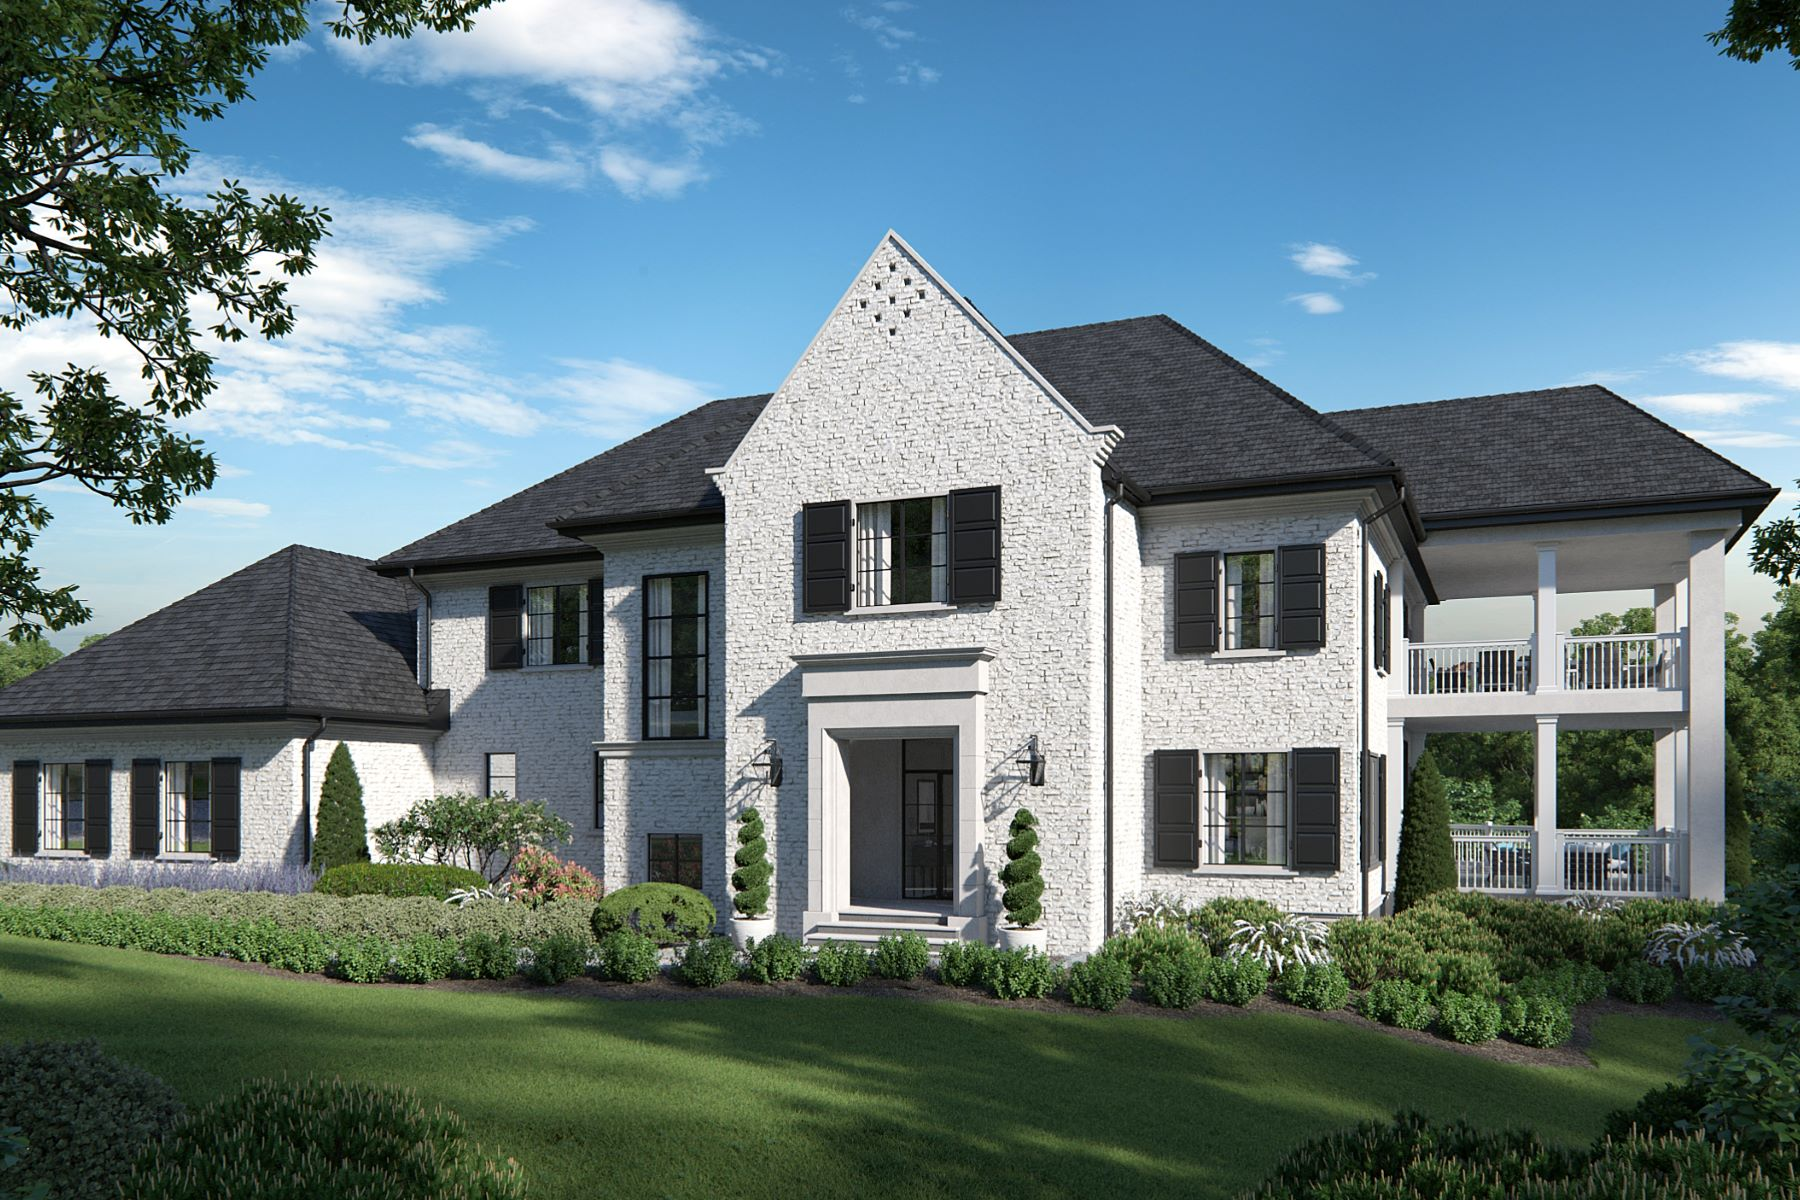 Single Family Homes for Sale at New Construction LEED Platinum 2686 Grandin Place Lot D Cincinnati, Ohio 45208 United States